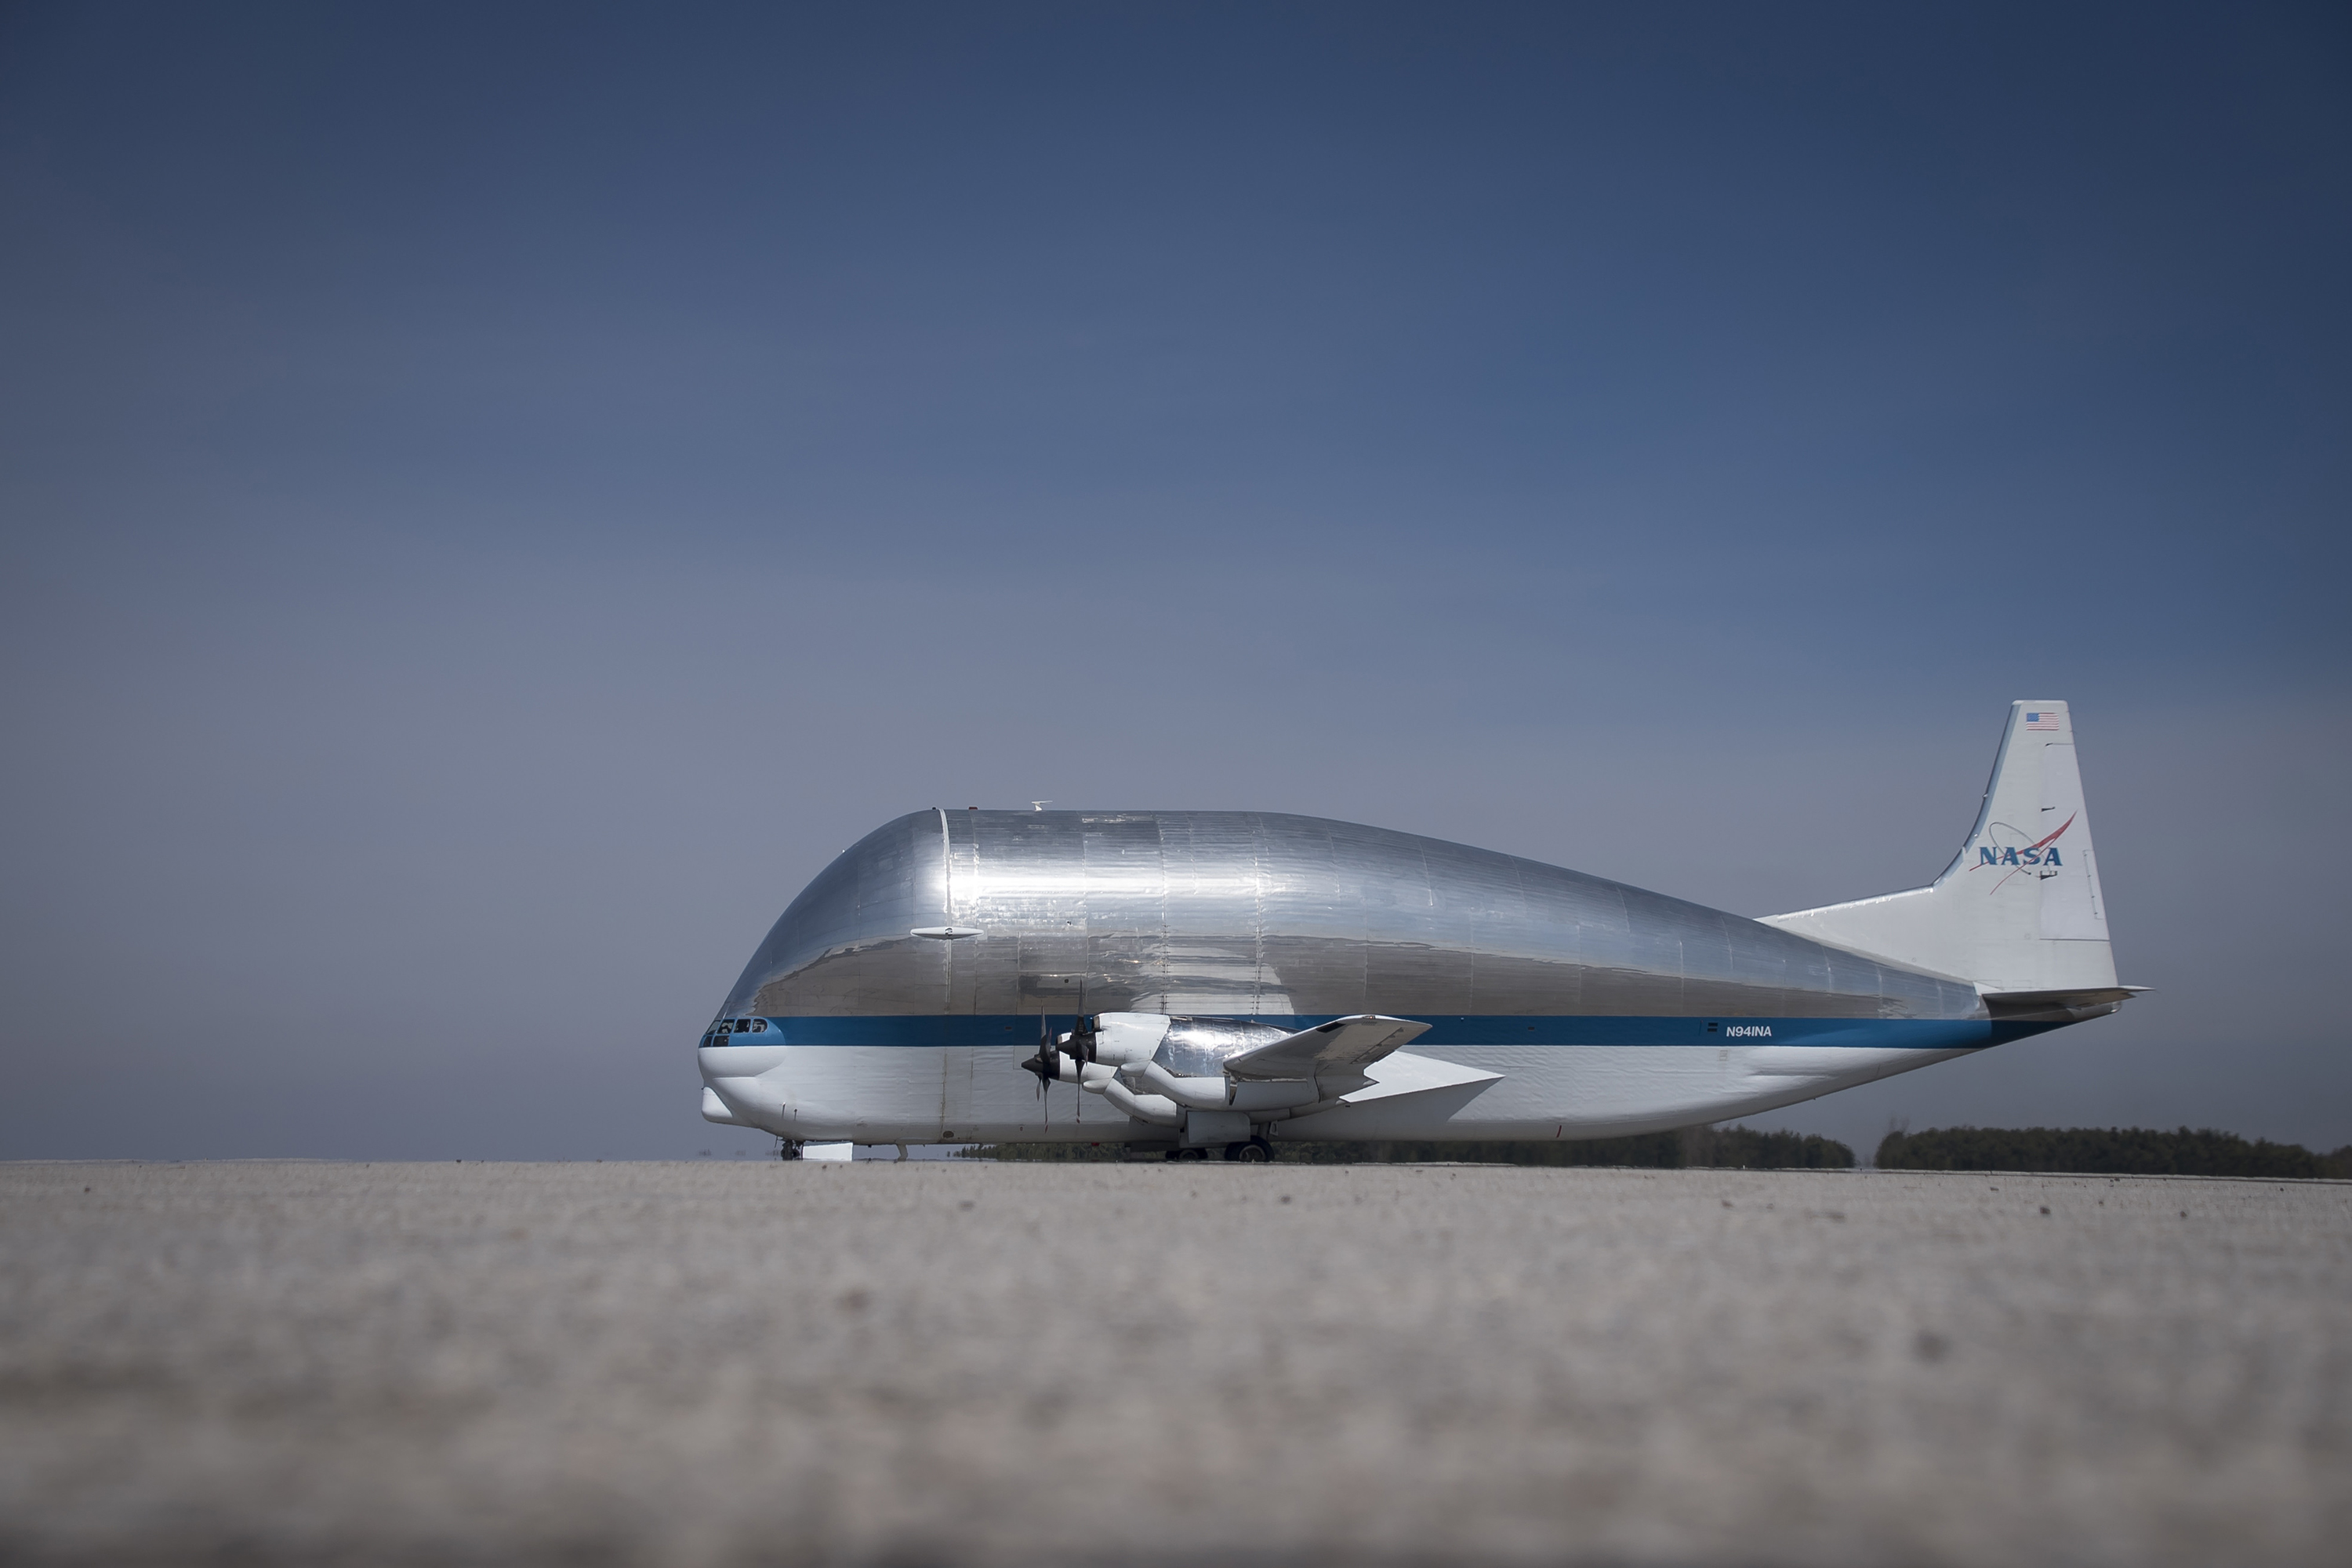 NASA's Super Guppy arrives at the 179th Airlift Wing in Mansfield, Ohio, March 22, 2020. The 179th AW is assisting the Super Guppy in transporting parts of the Orion Space Project that recently completed testing at the Glenn Research Center in Sandusky, Ohio. (Tech. Sgt. Joe Harwood/Air National Guard)